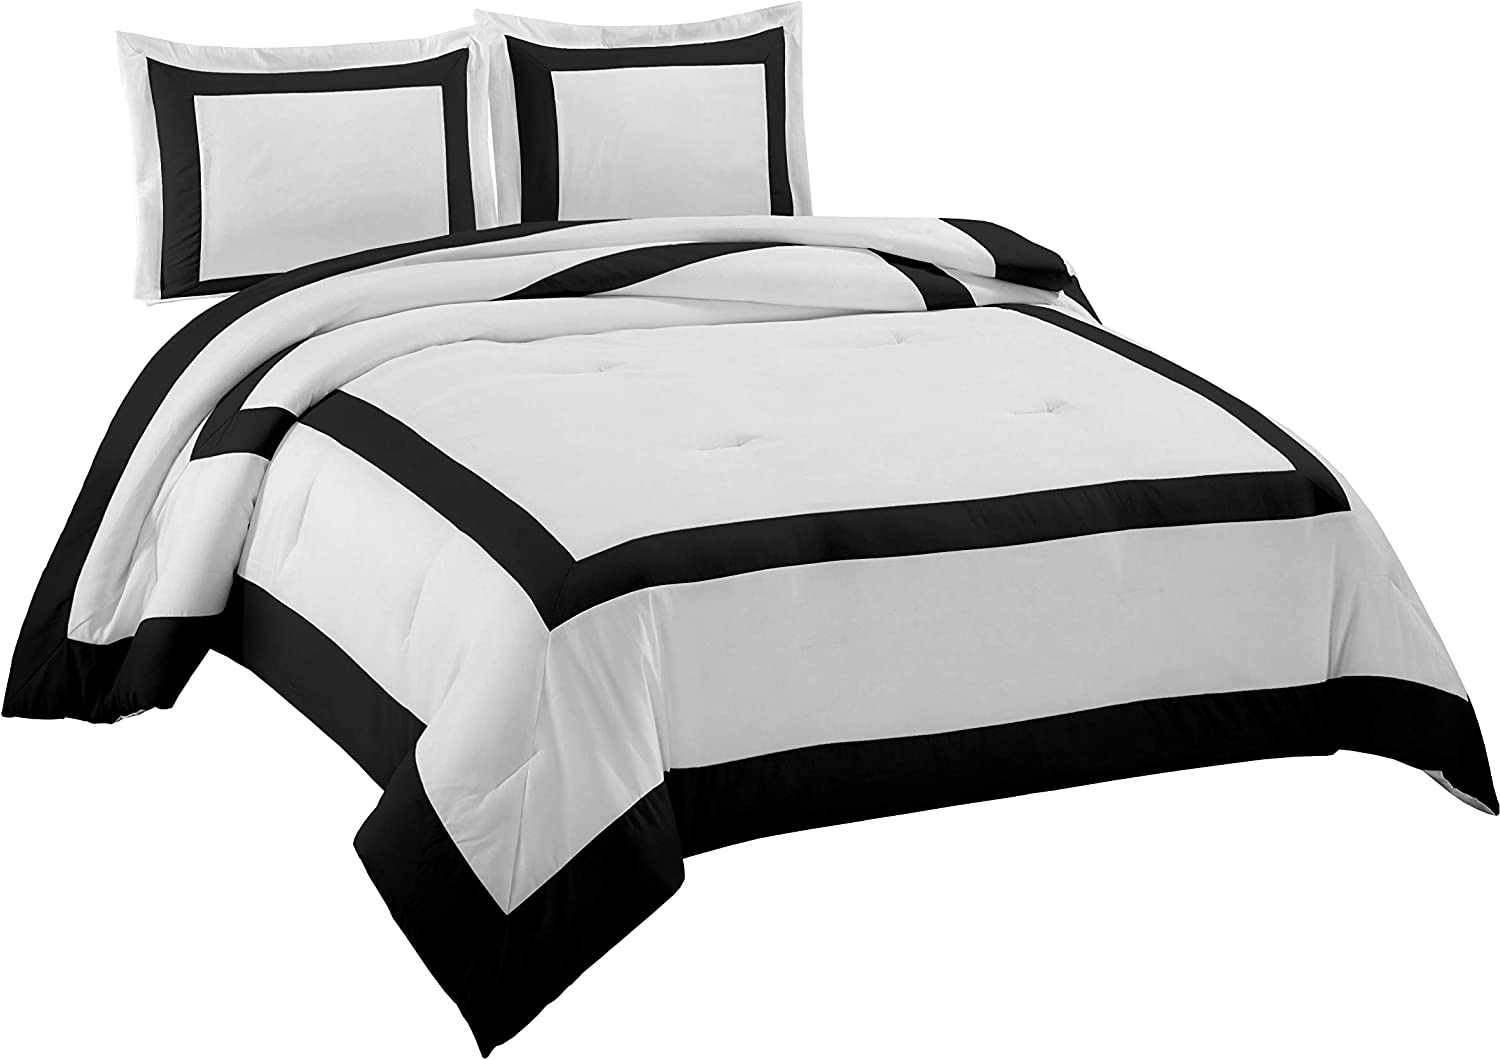 Chezmoi Collection 3-Piece Hotel style Square Framed Bedding Comforter Set